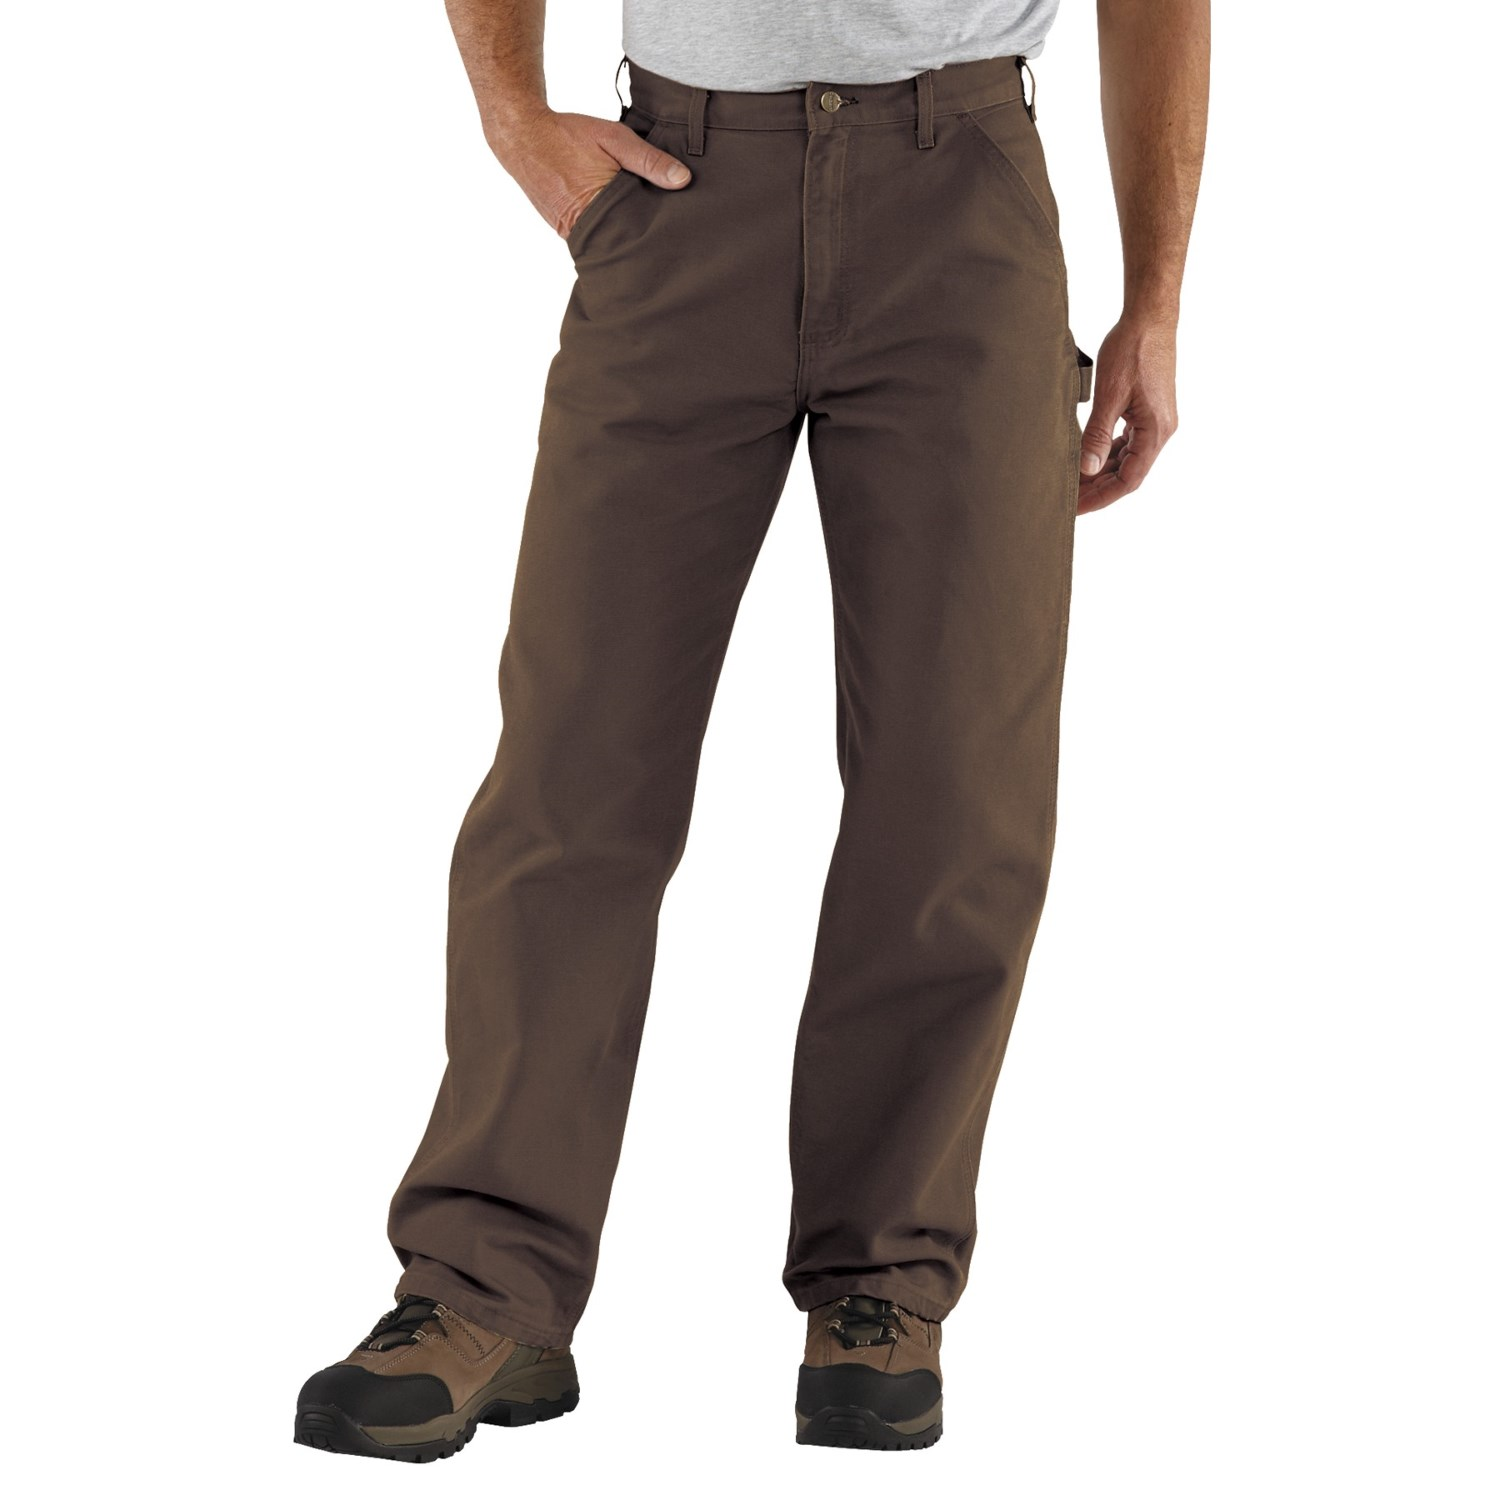 Looking for Men's Wrangler Jeans? Shop newbez.ml for great prices and high quality products from all the brands you know and love. Check out more here!